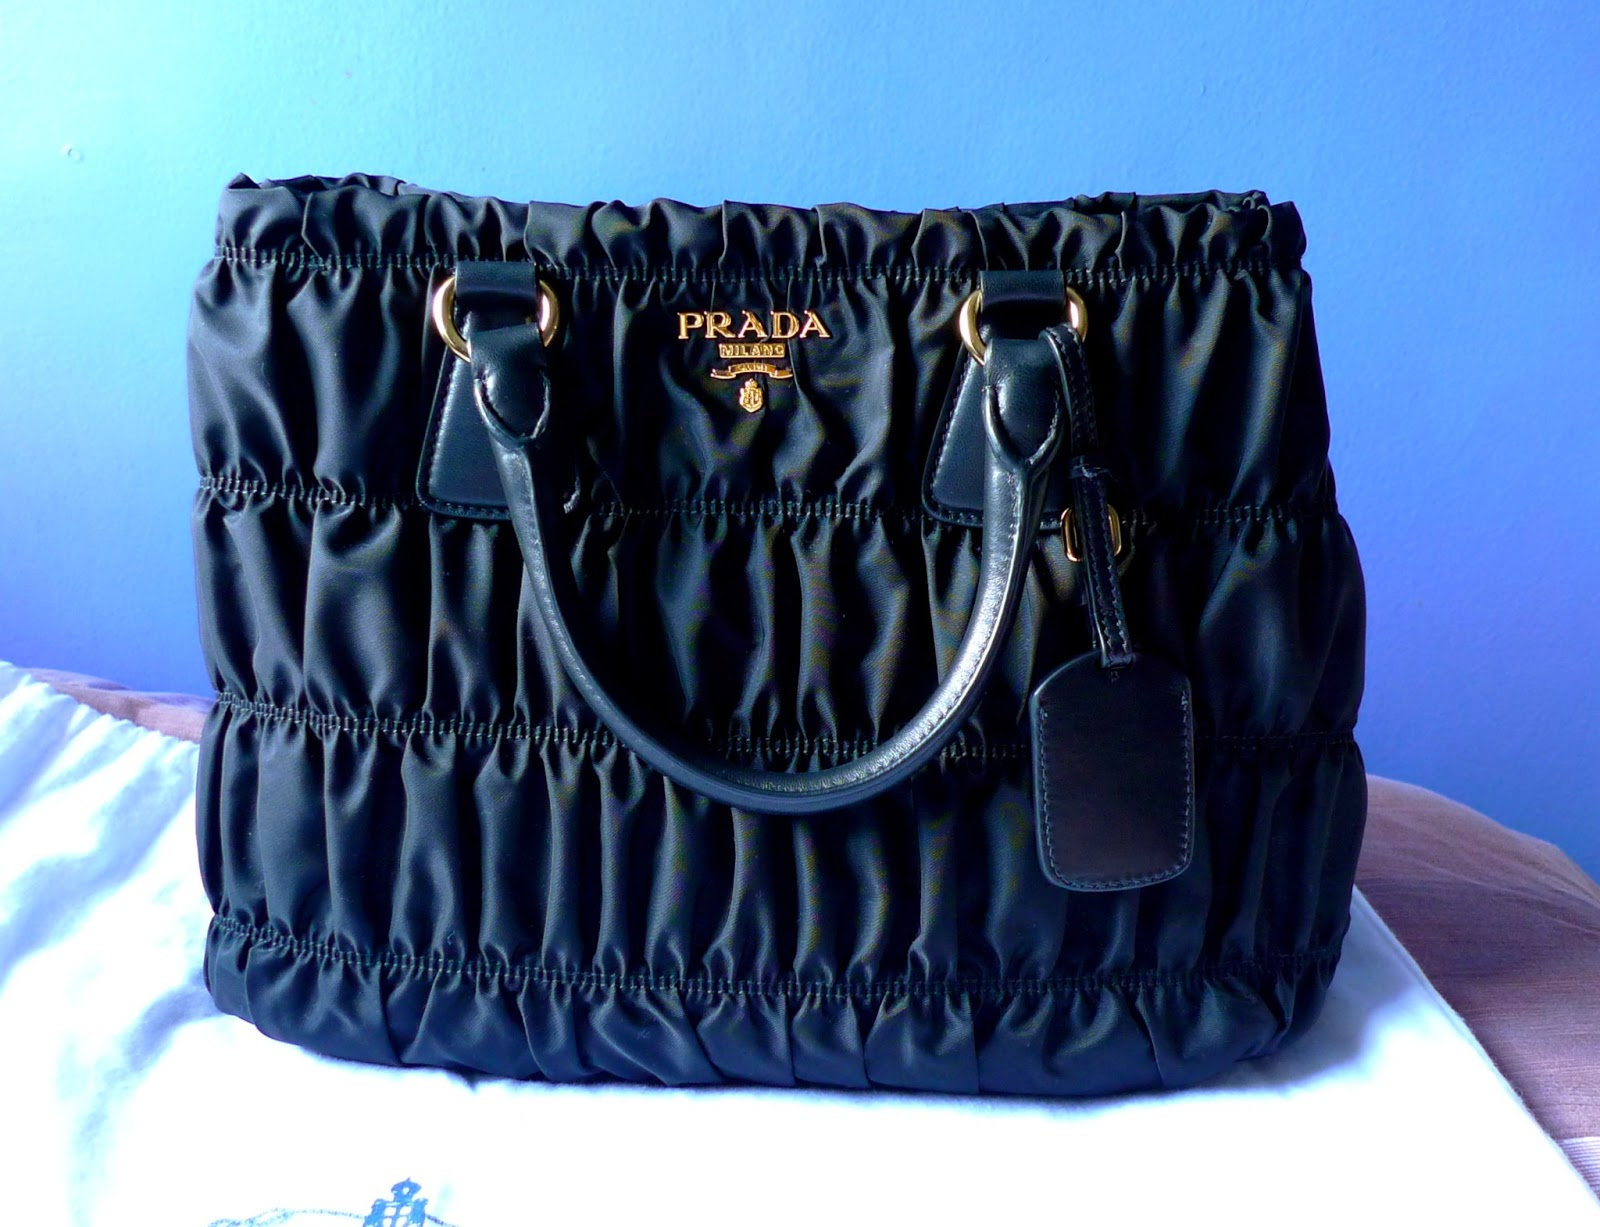 prada saffiano lux tote double zip - Bag Review: Prada Tessuto Gaufre' BN1789M+Authenticate Your Prada ...